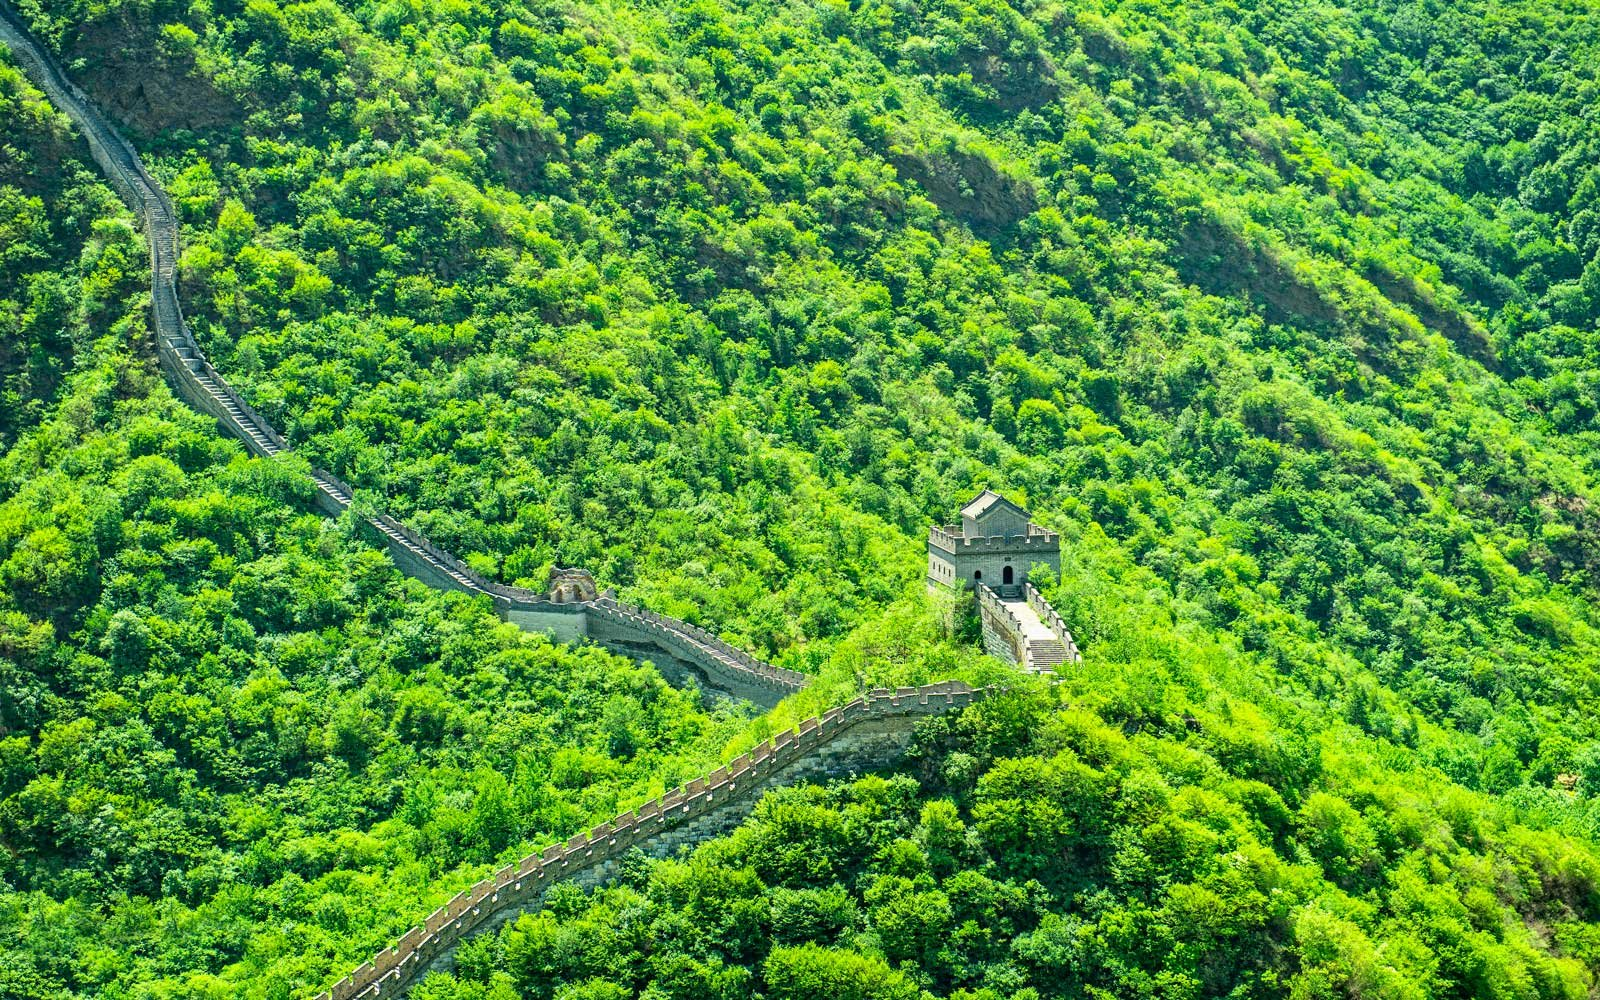 Laws Protecting the Great Wall